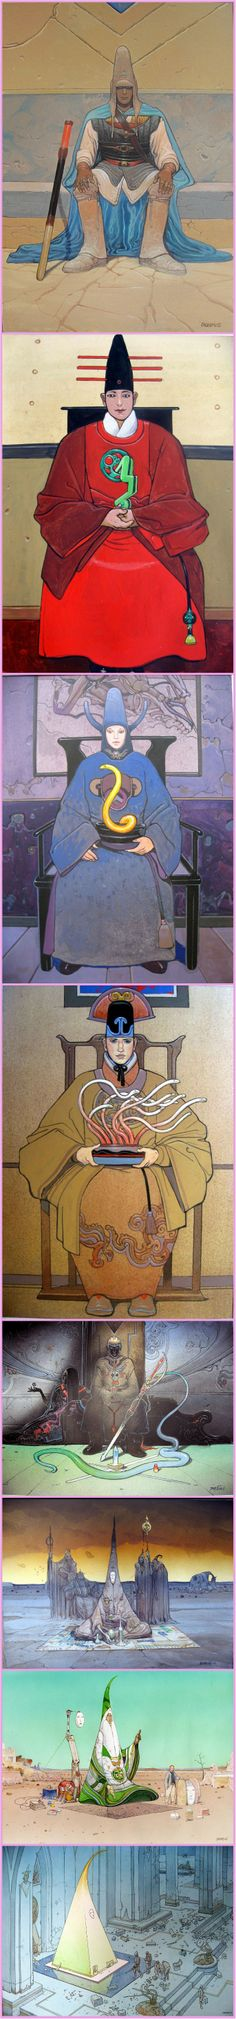 Moebius (and other?)